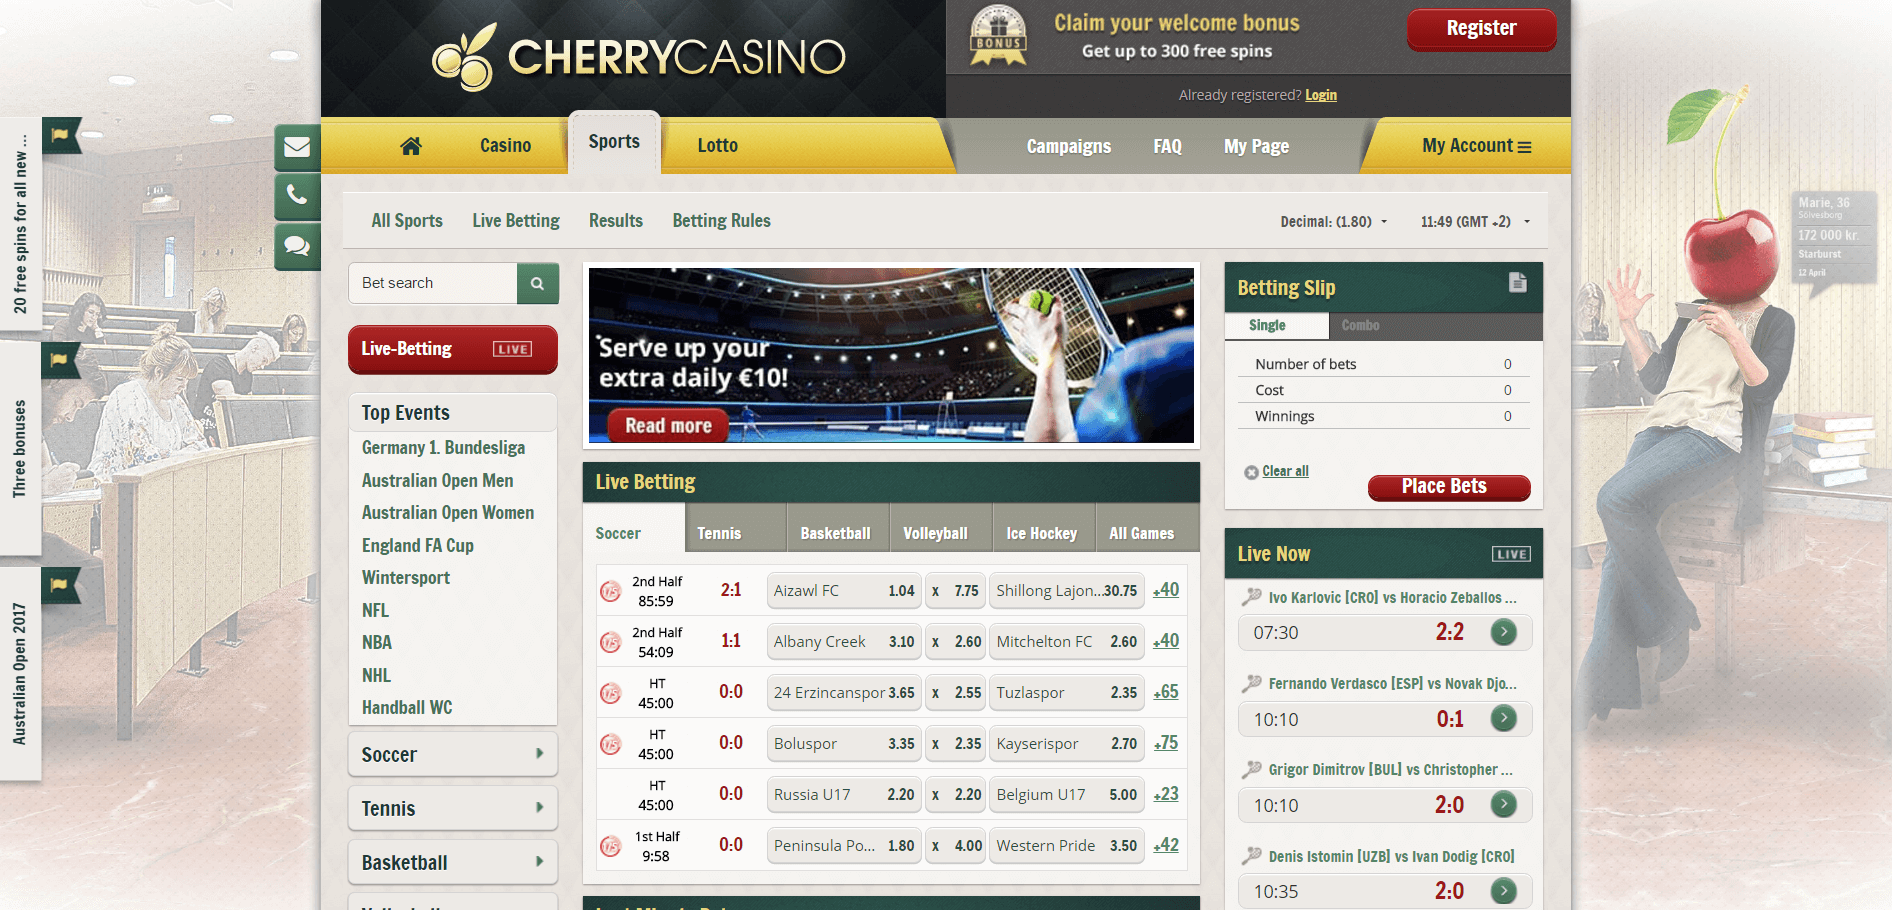 An image of the Cherry Casino Website sports page